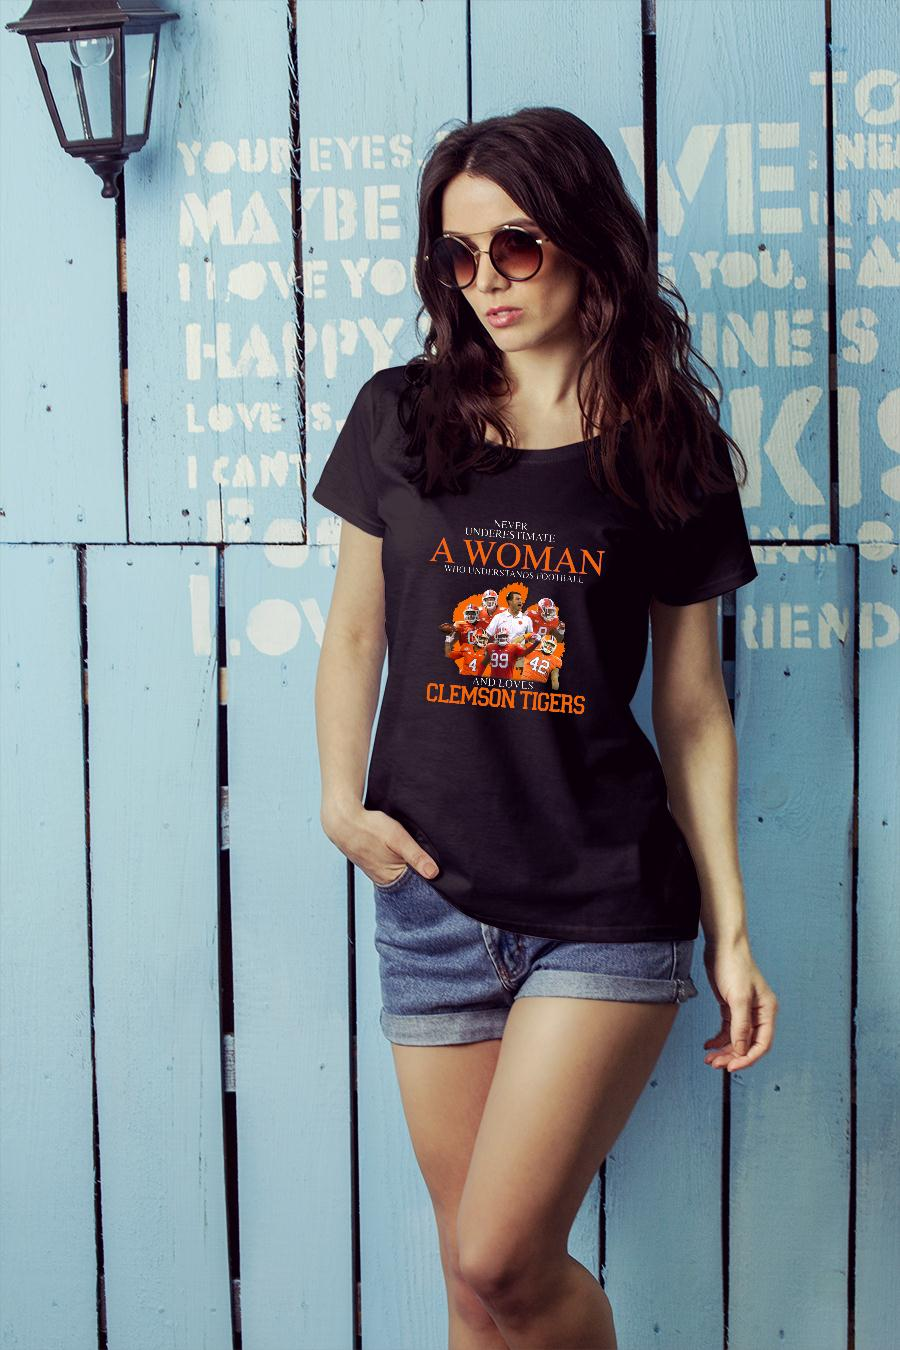 Never Underestimate A Woman Who Understands Football And Love Clemson Tigers shirt ladies tee official